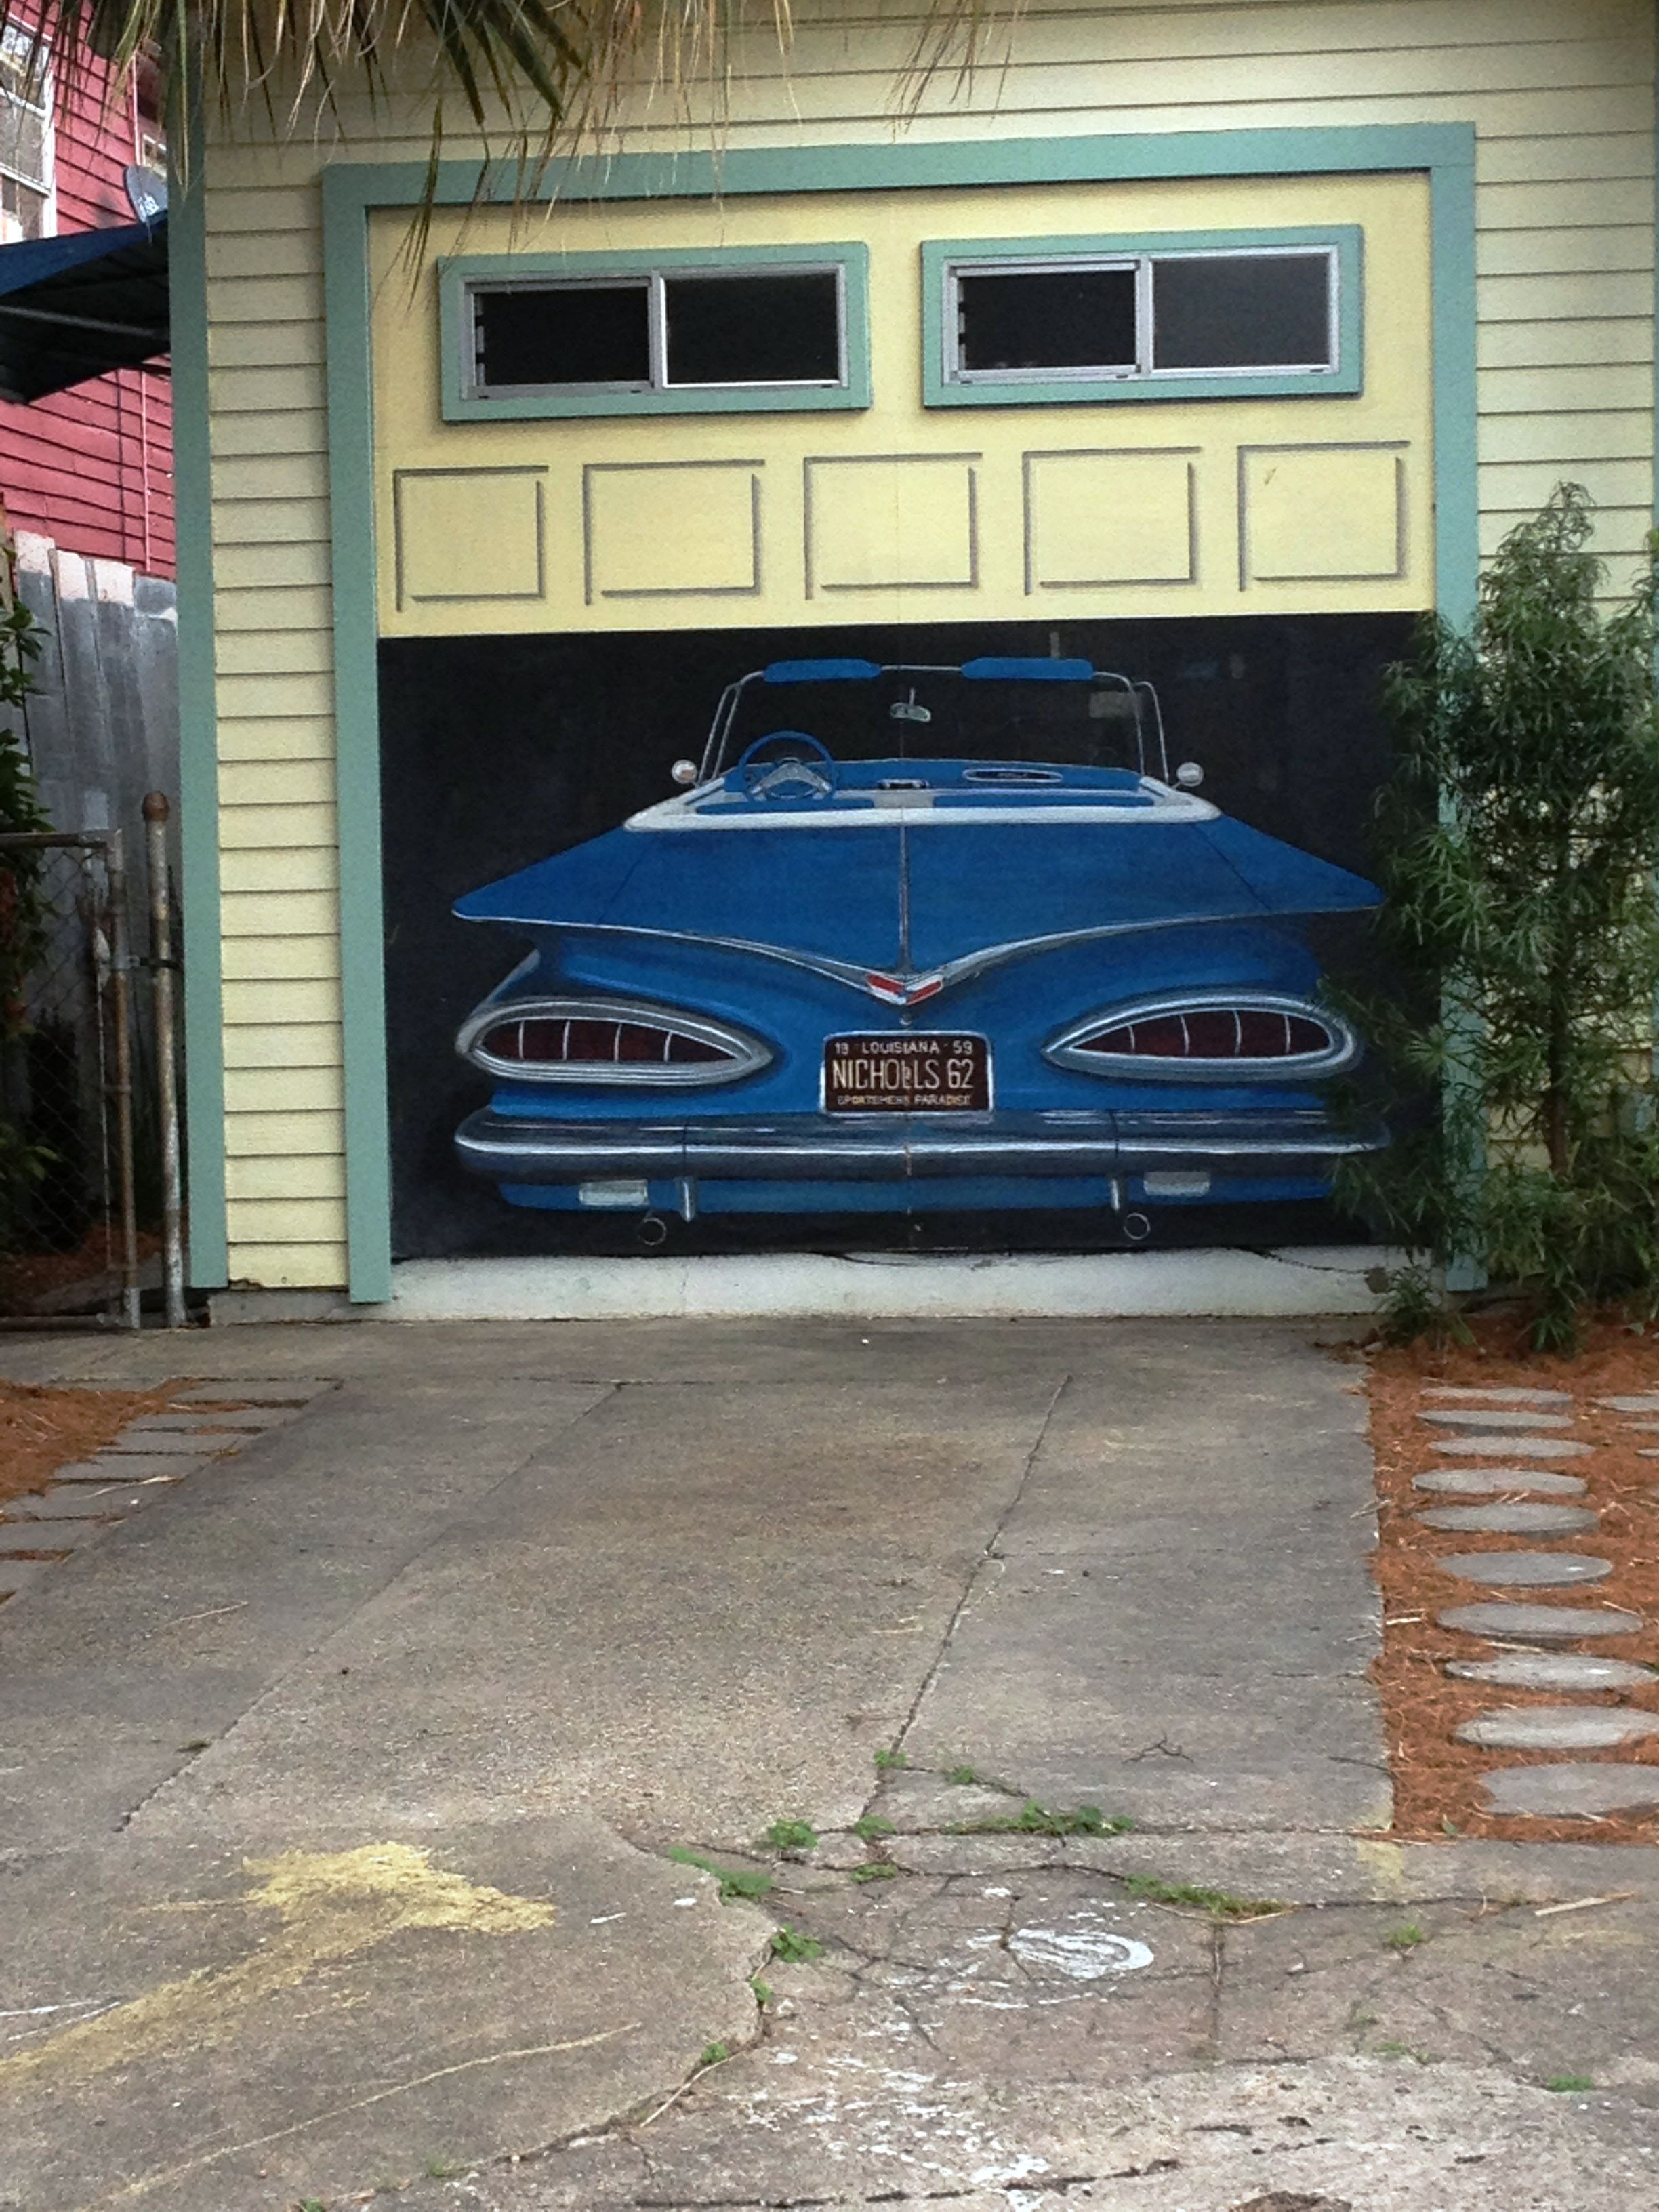 New orleans thats a painted garage door dont know whats inside a 59 chevy maybe